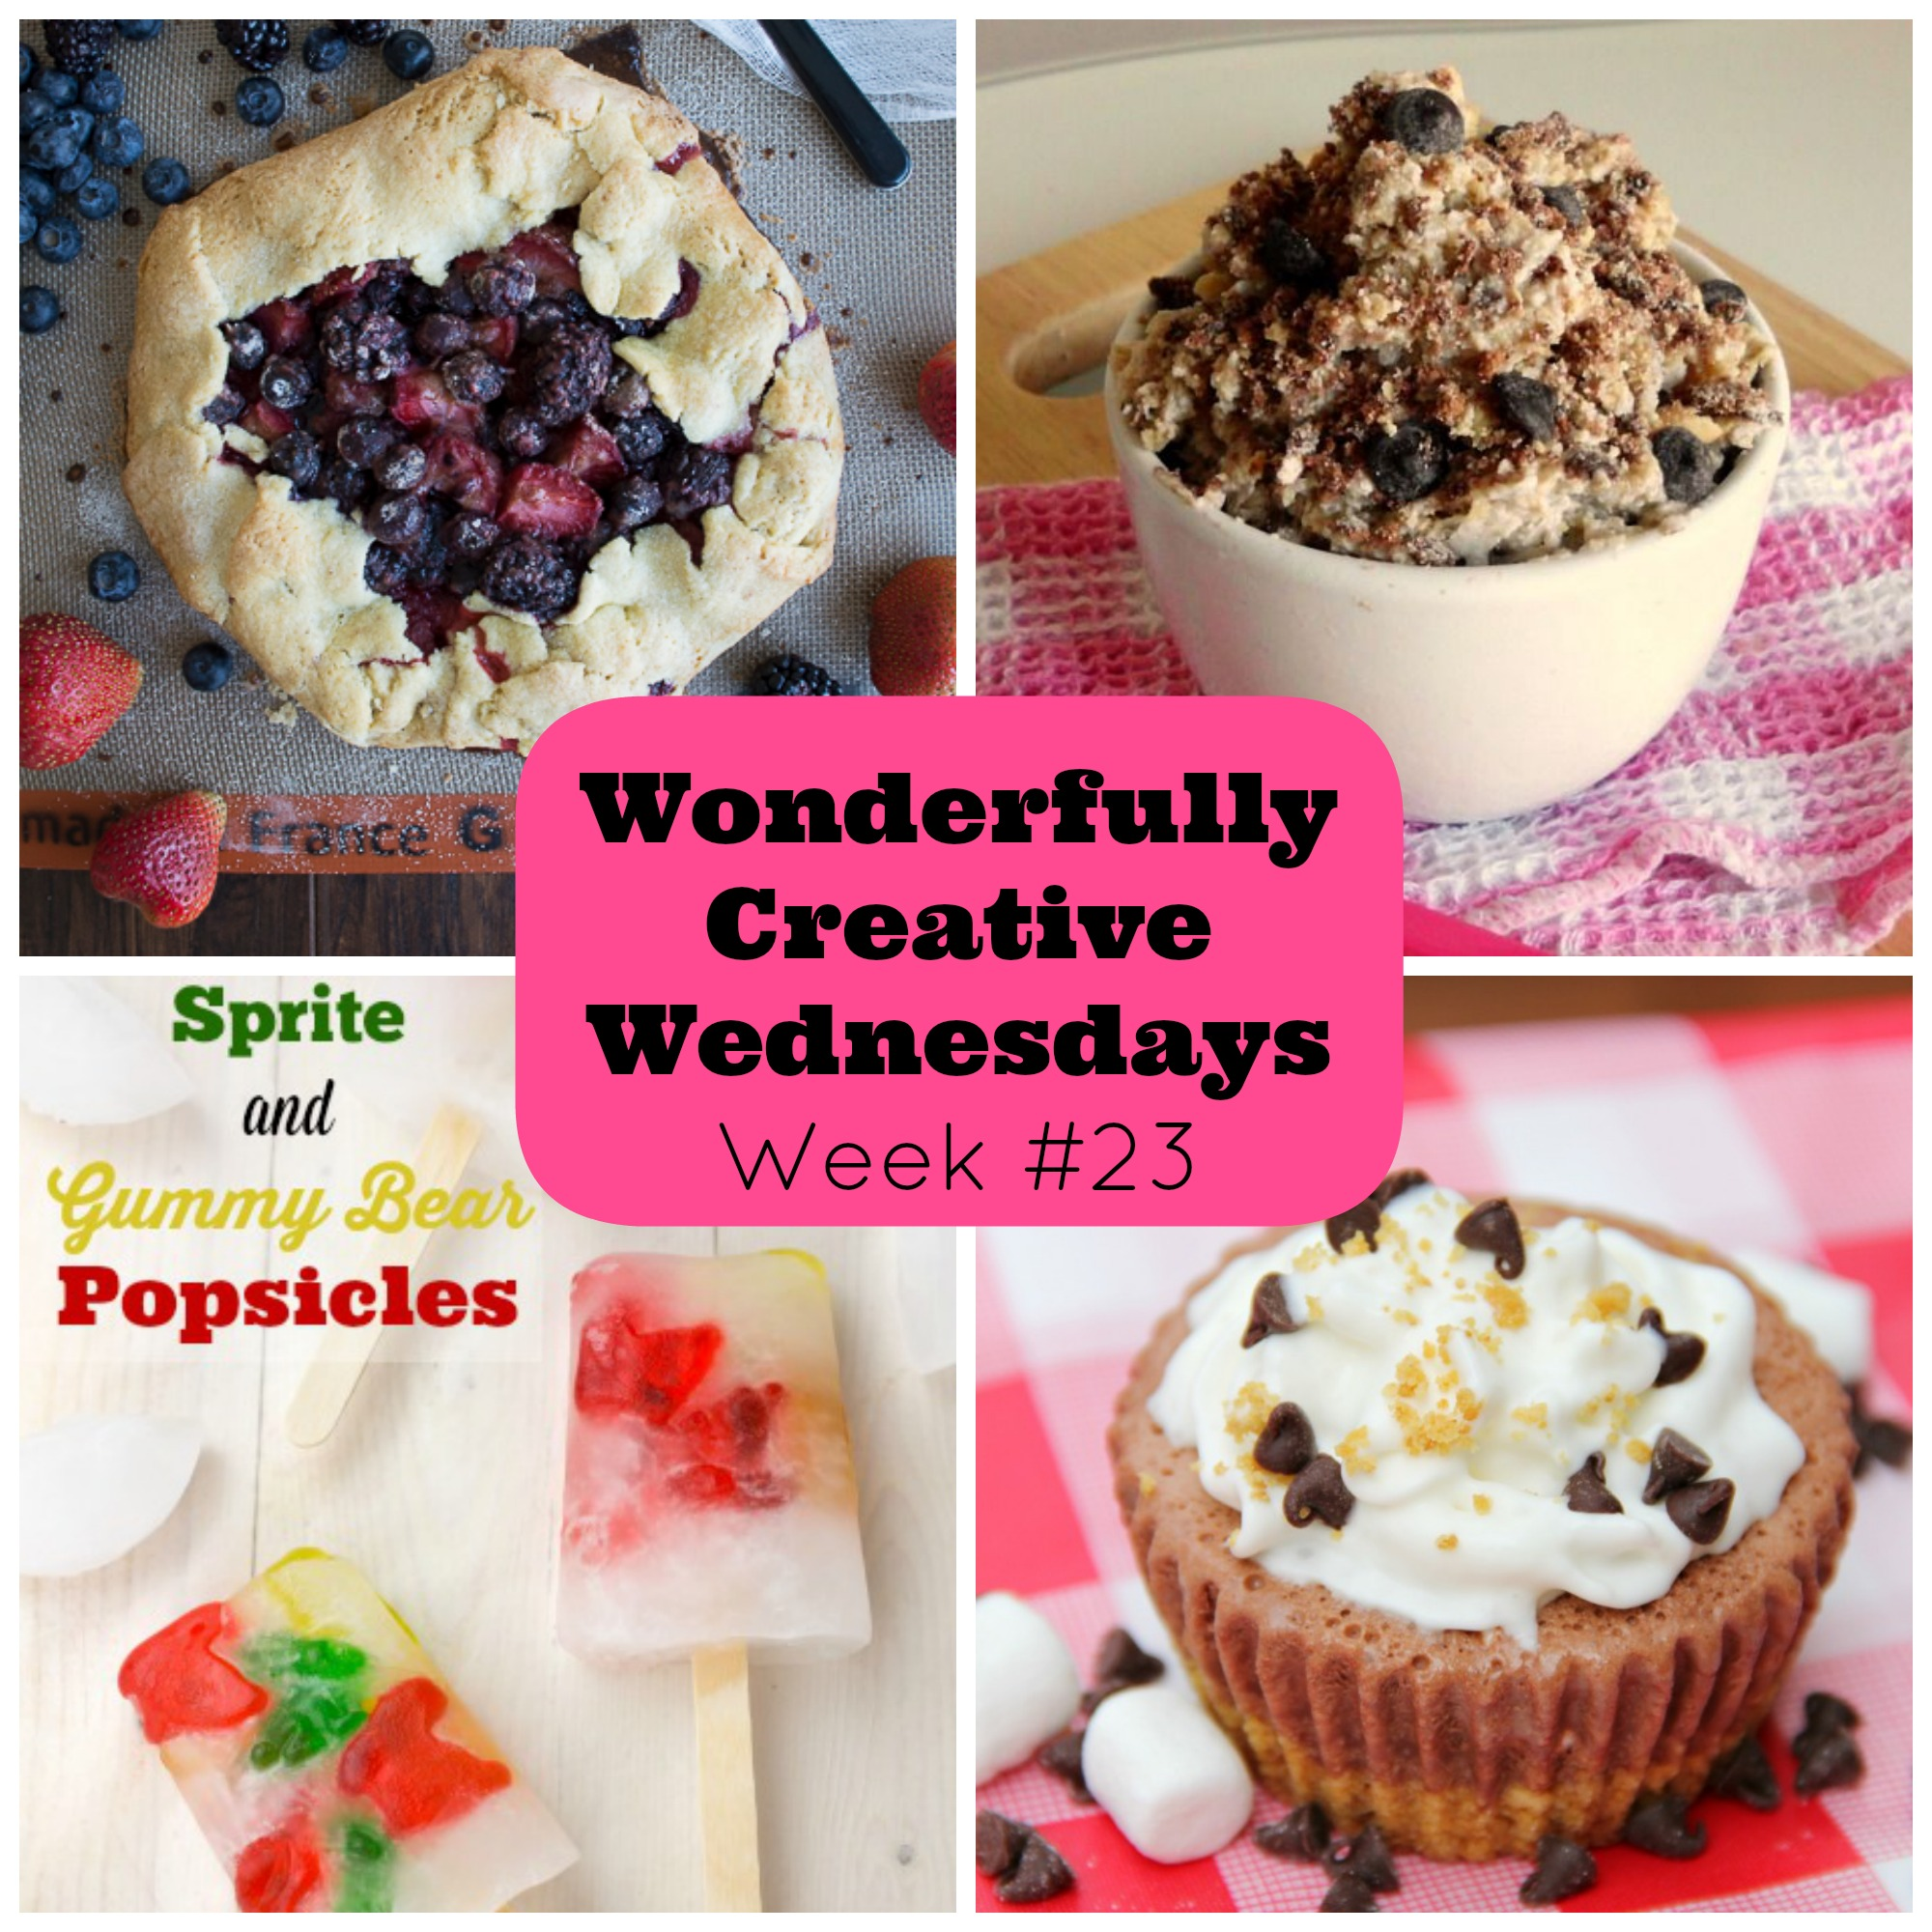 Wonderfully Creative Wednesdays Week 23